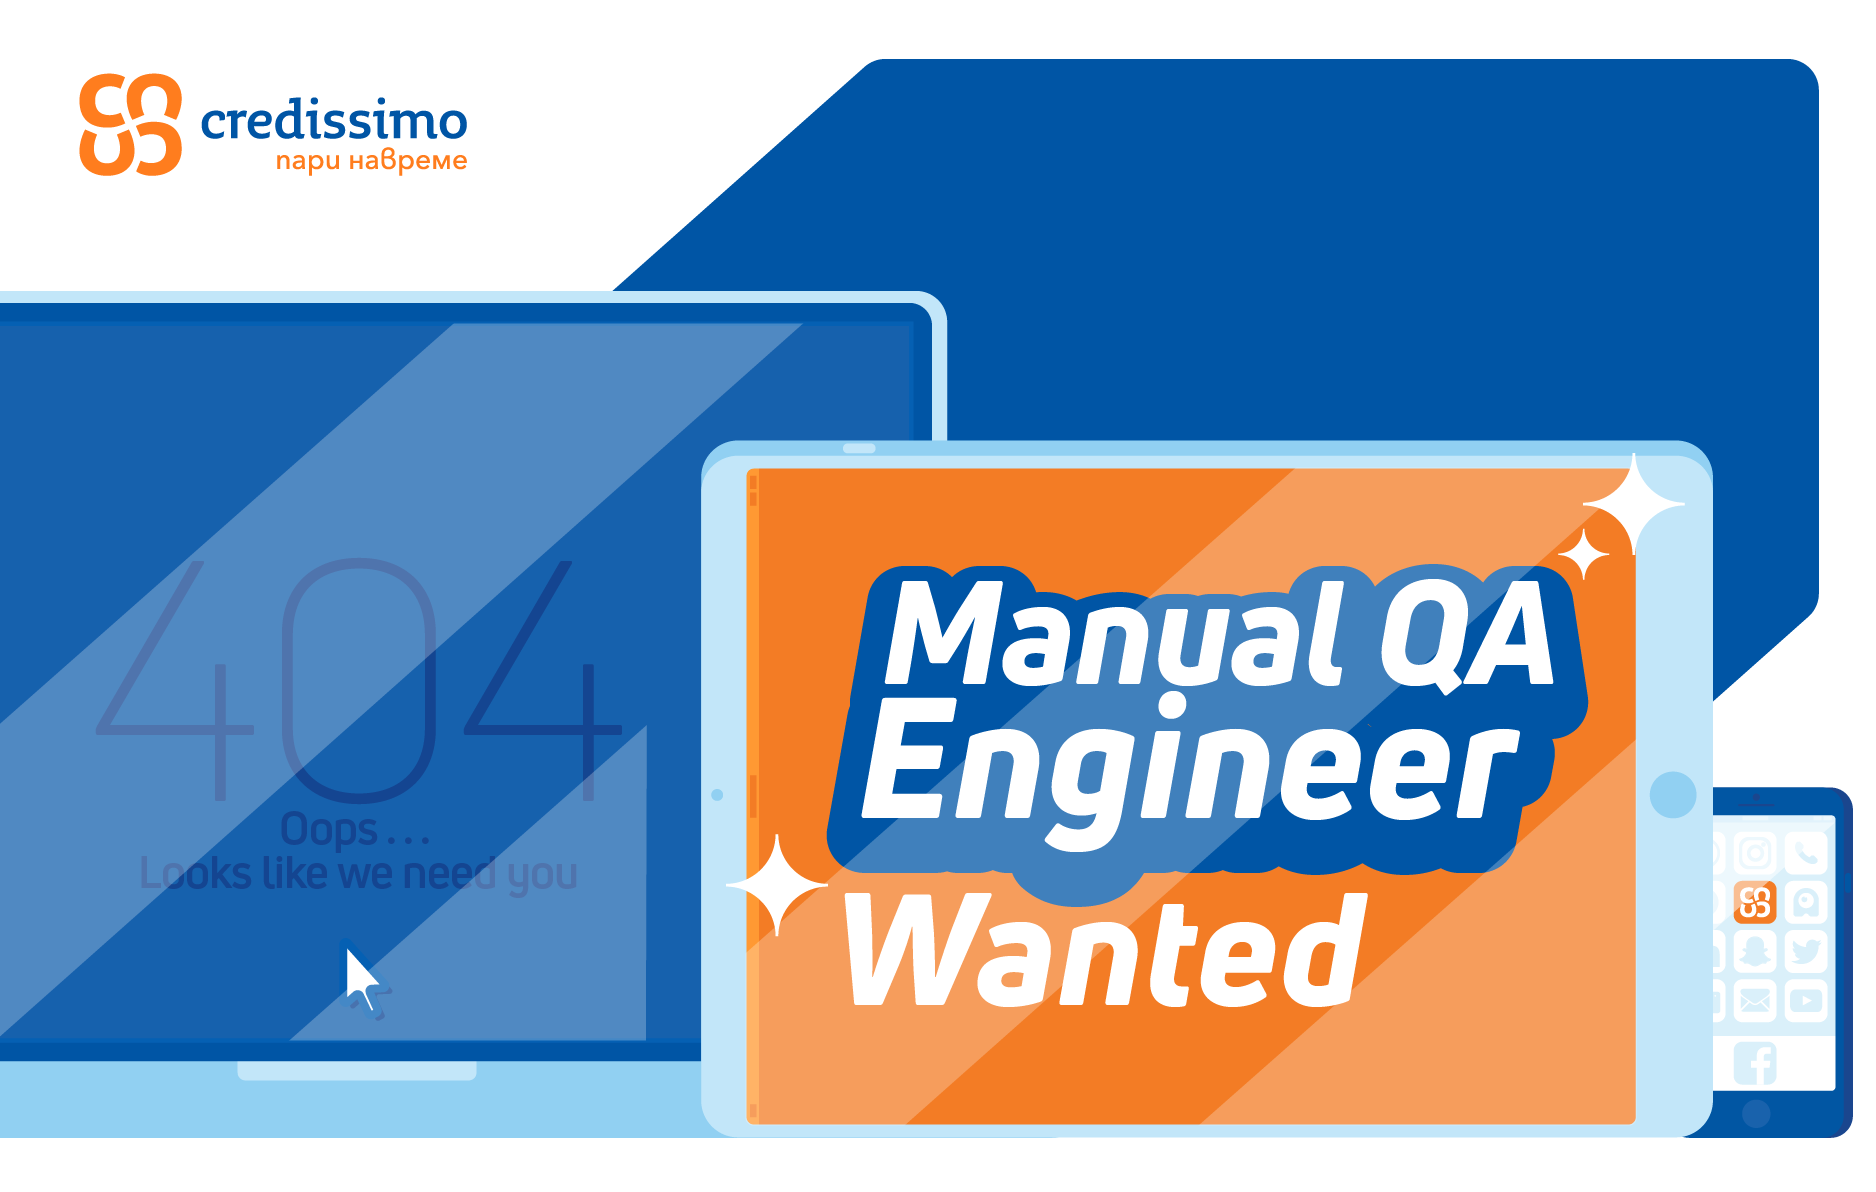 Manual QA Engineer